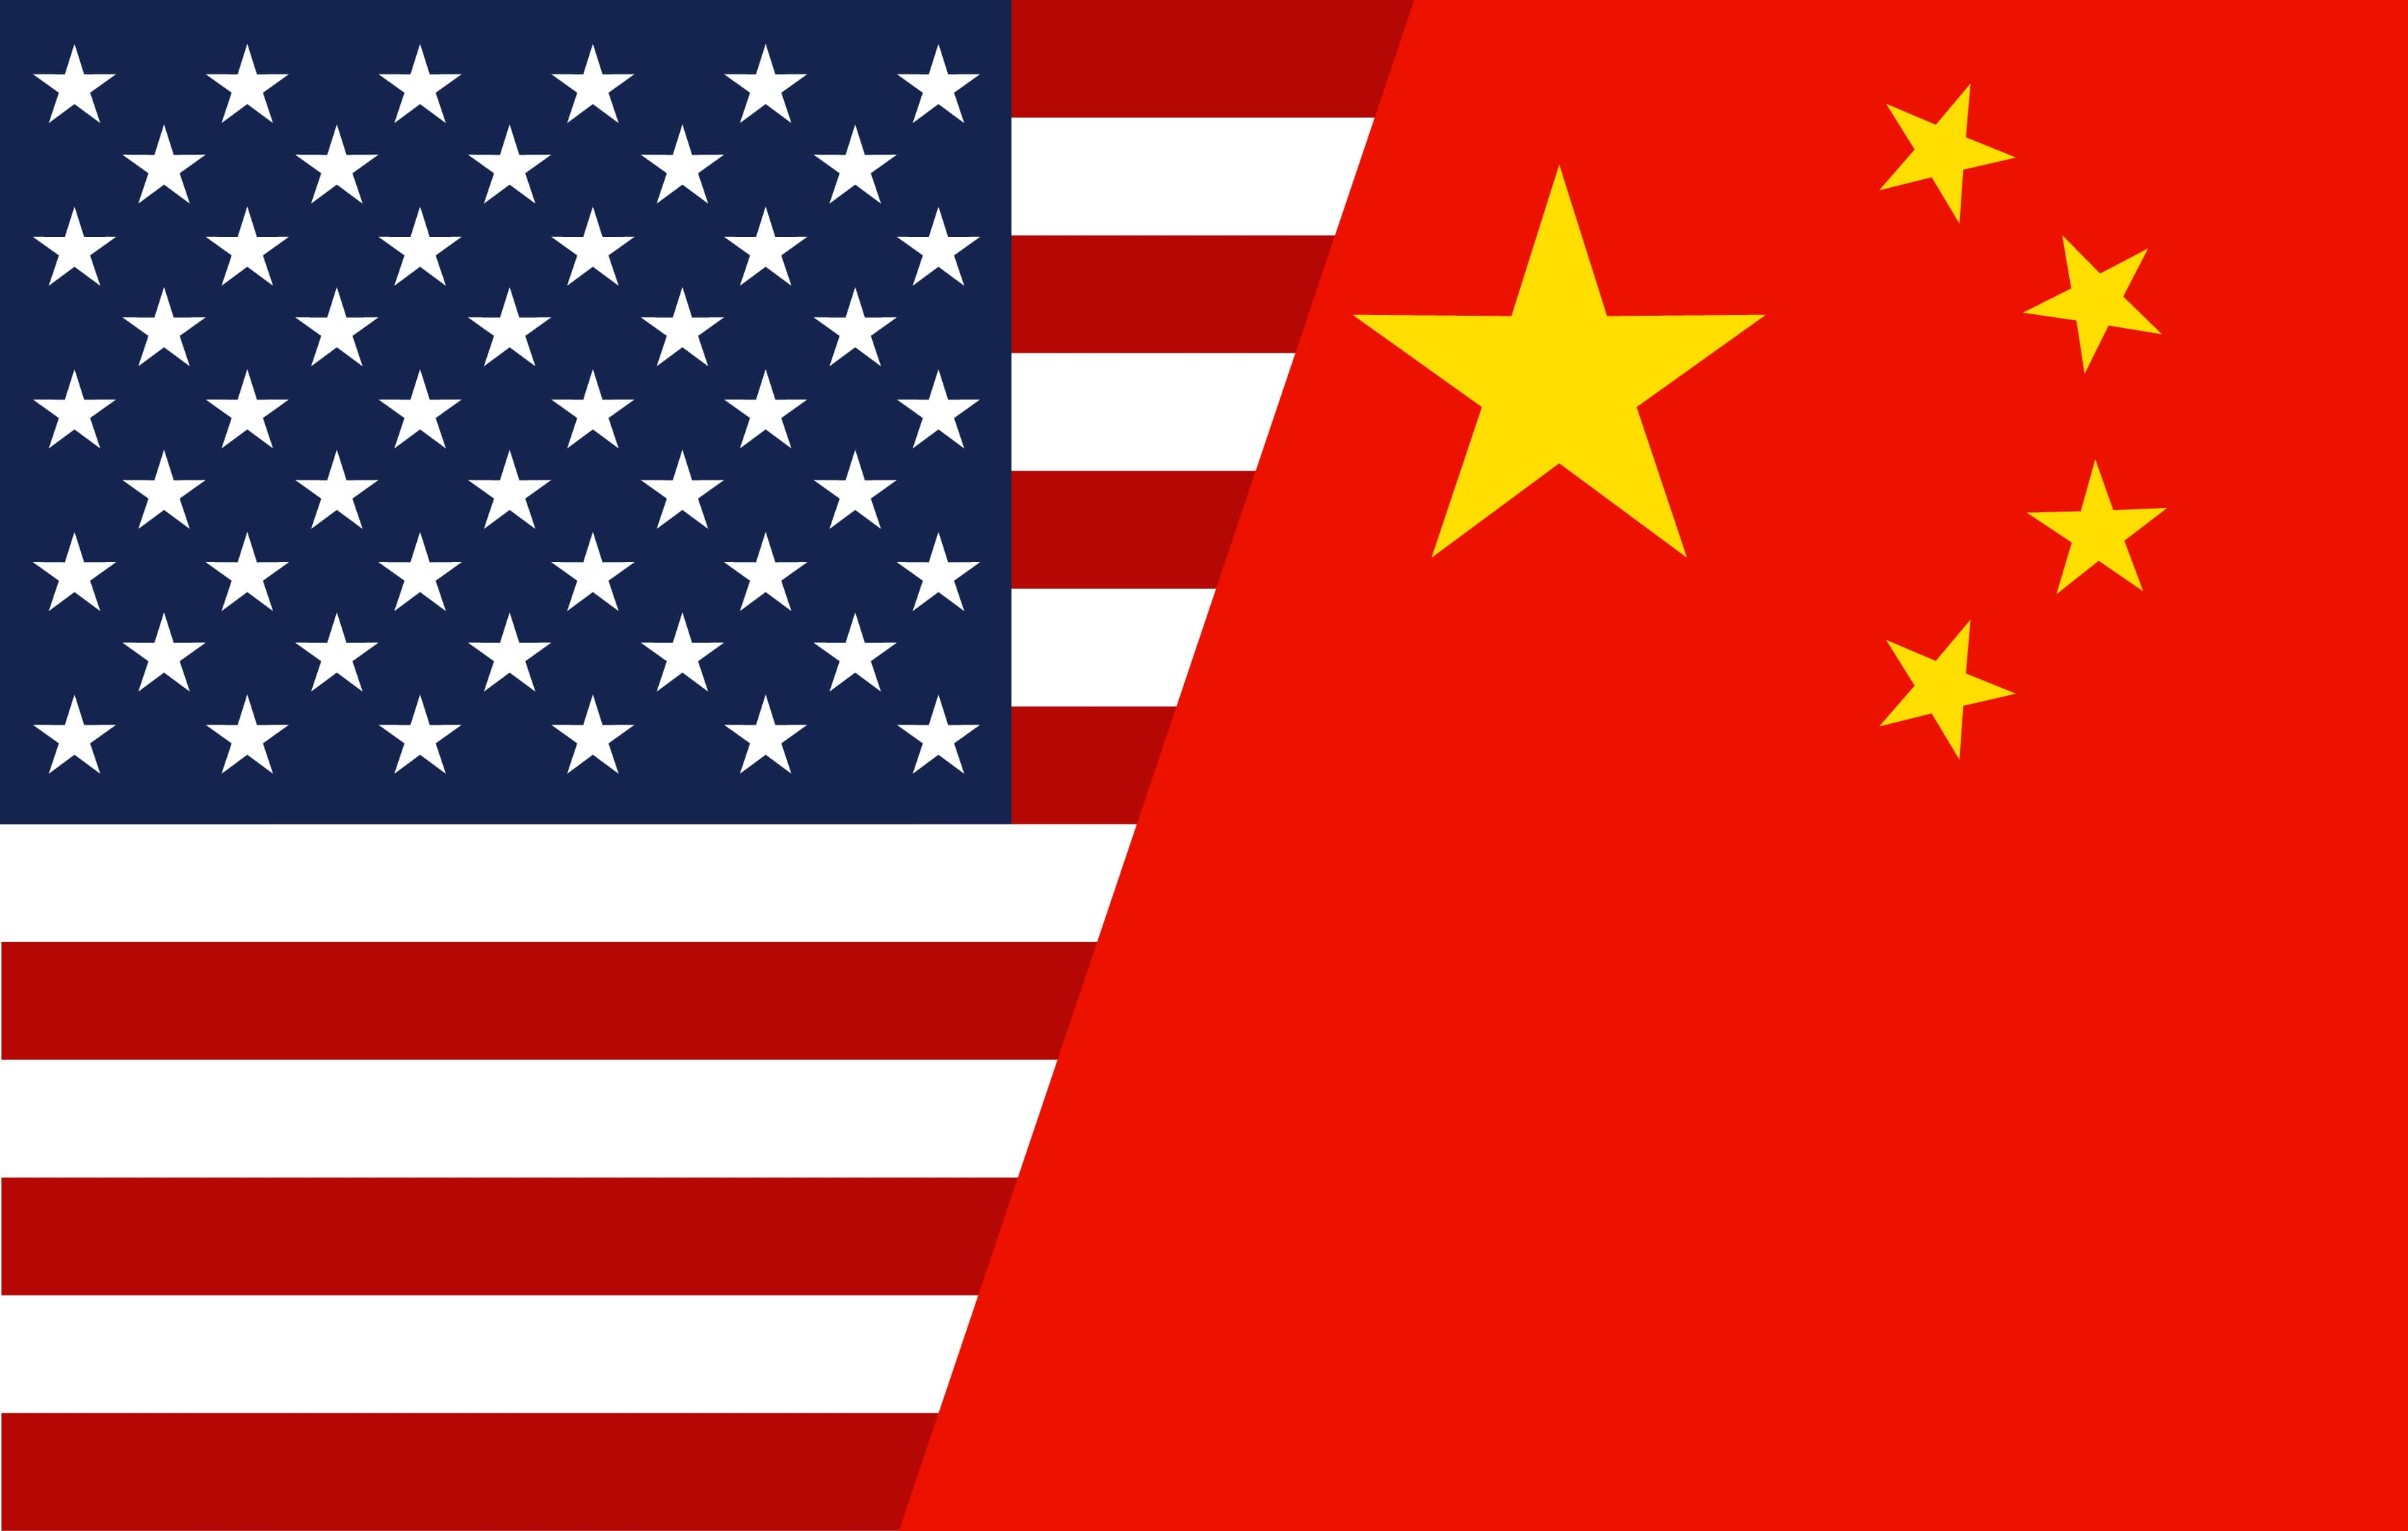 Trade Talk: Understanding the Trade and Competitiveness Landscape Between the U.S. and China